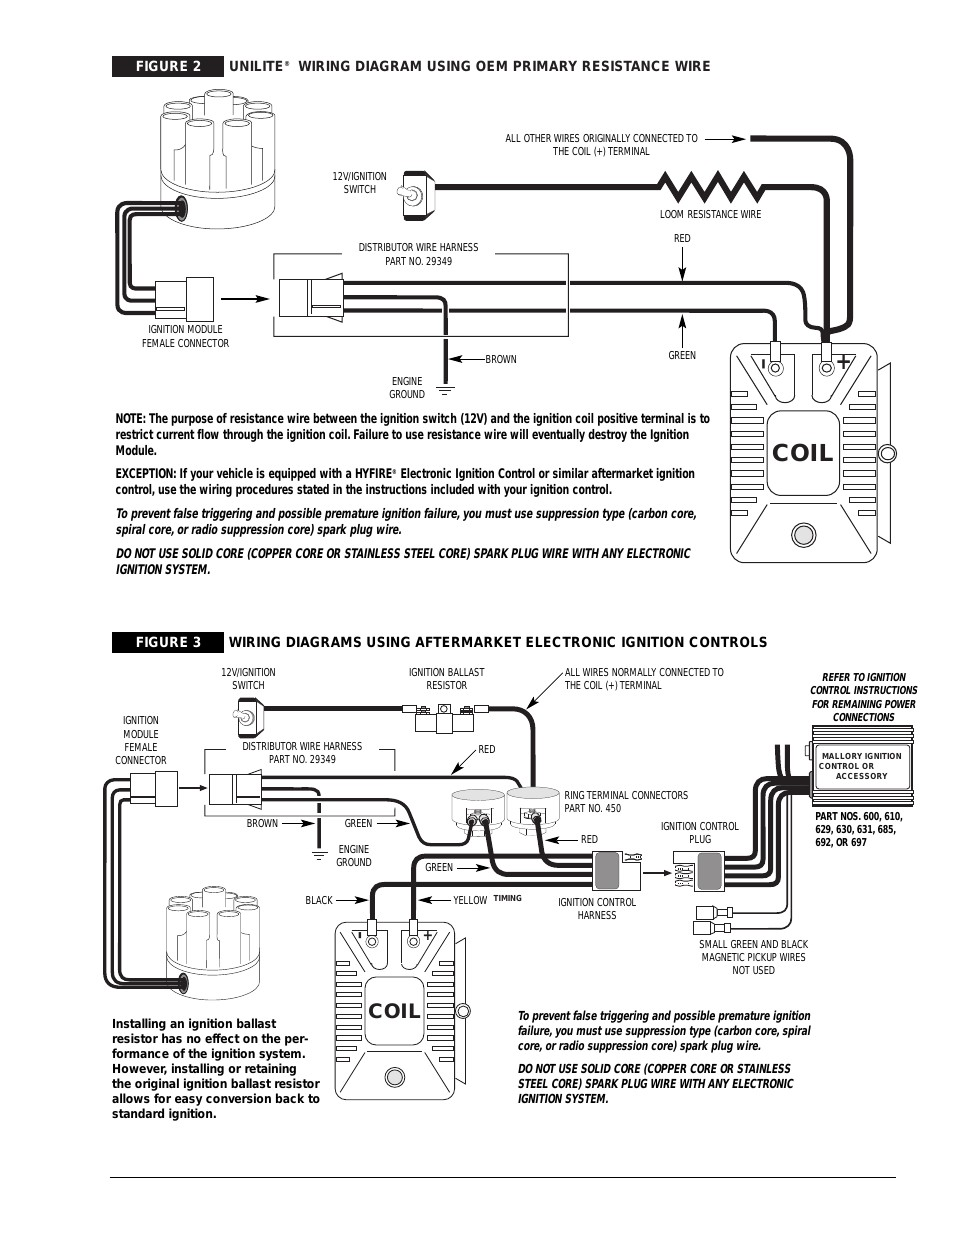 Coil Mallory Ignition UNILITE DISTRIBUTOR User Manual Best Wiring Diagram